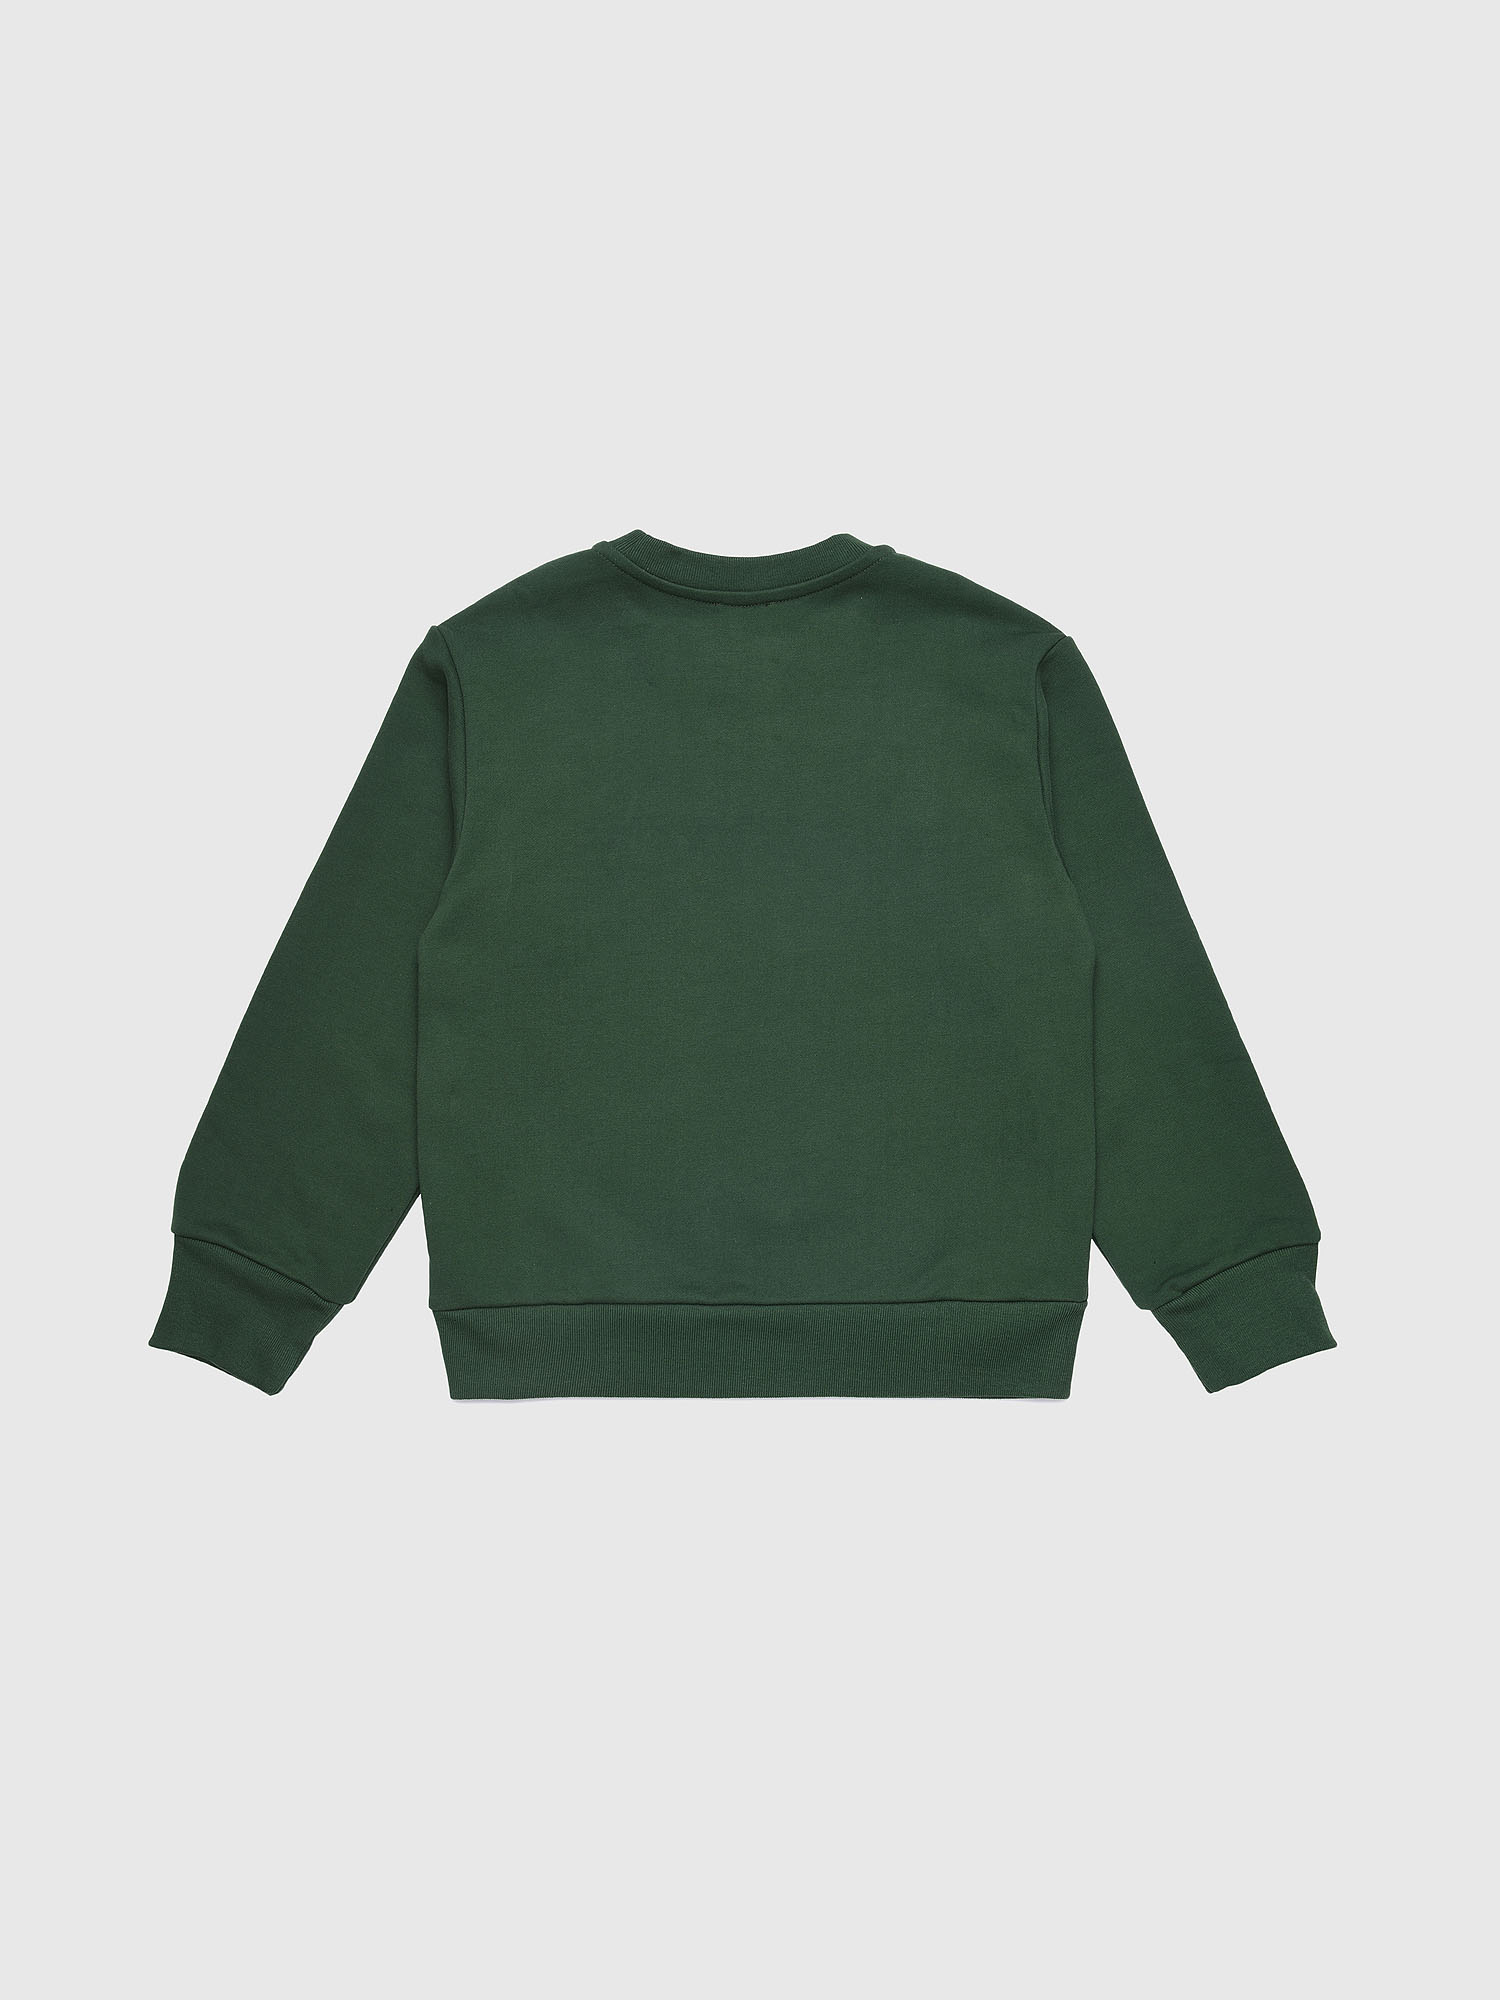 Diesel - SCREWDIVISION OVER,  - Sweaters - Image 2